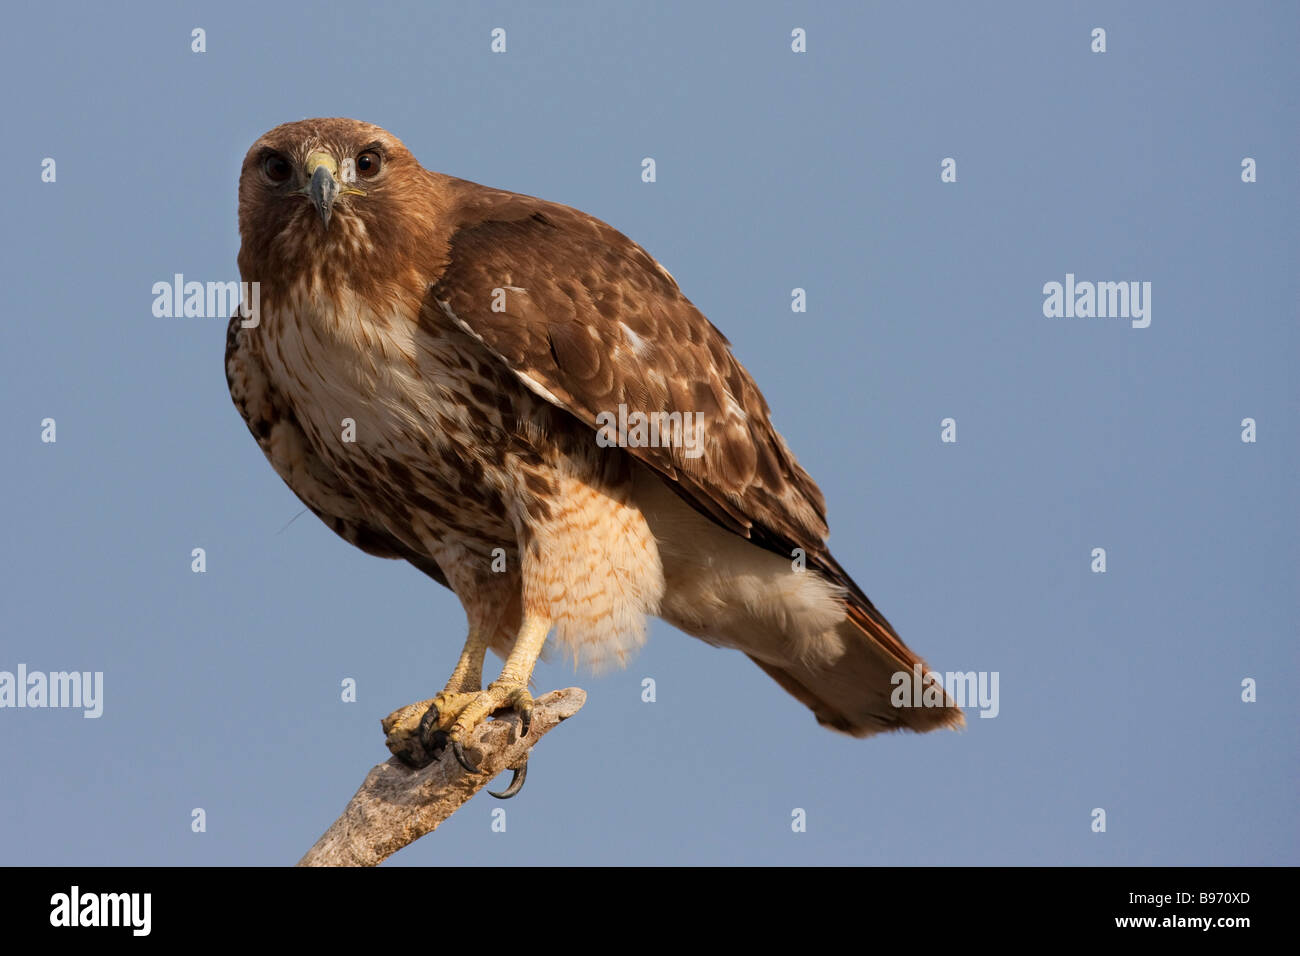 Red Tailed Hawk Sitting On A Branch In The Tulelake Wildlife Refuge Stock Photo Alamy